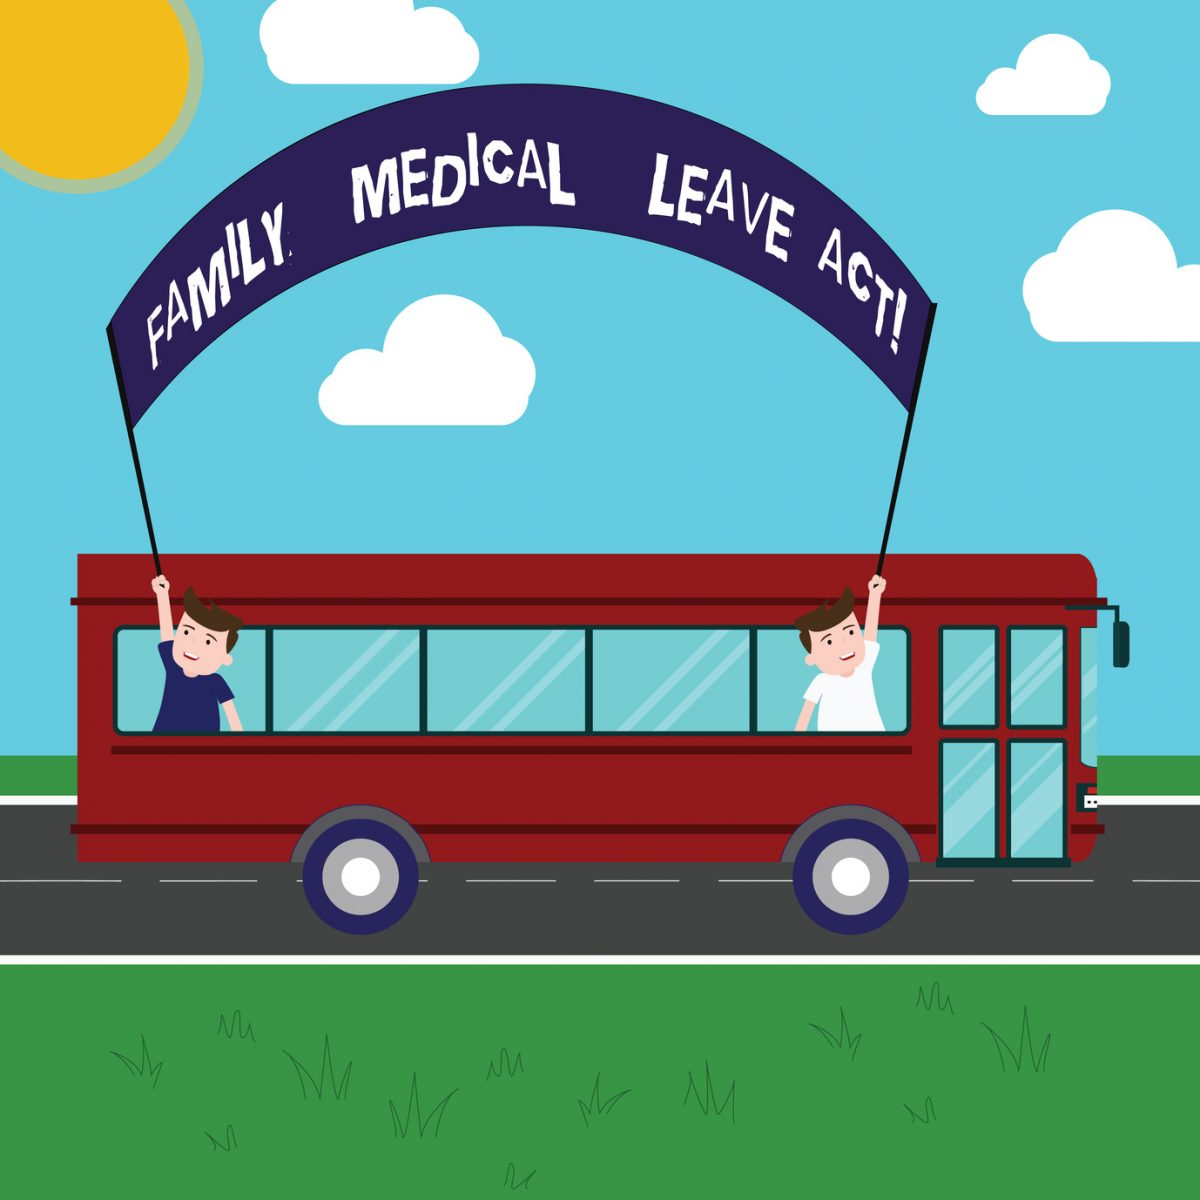 A cartoon of two people on a bus holding a sign that says Family Medical Leave Act representing how our Chicago employment lawyers can assist you with FMLA issues